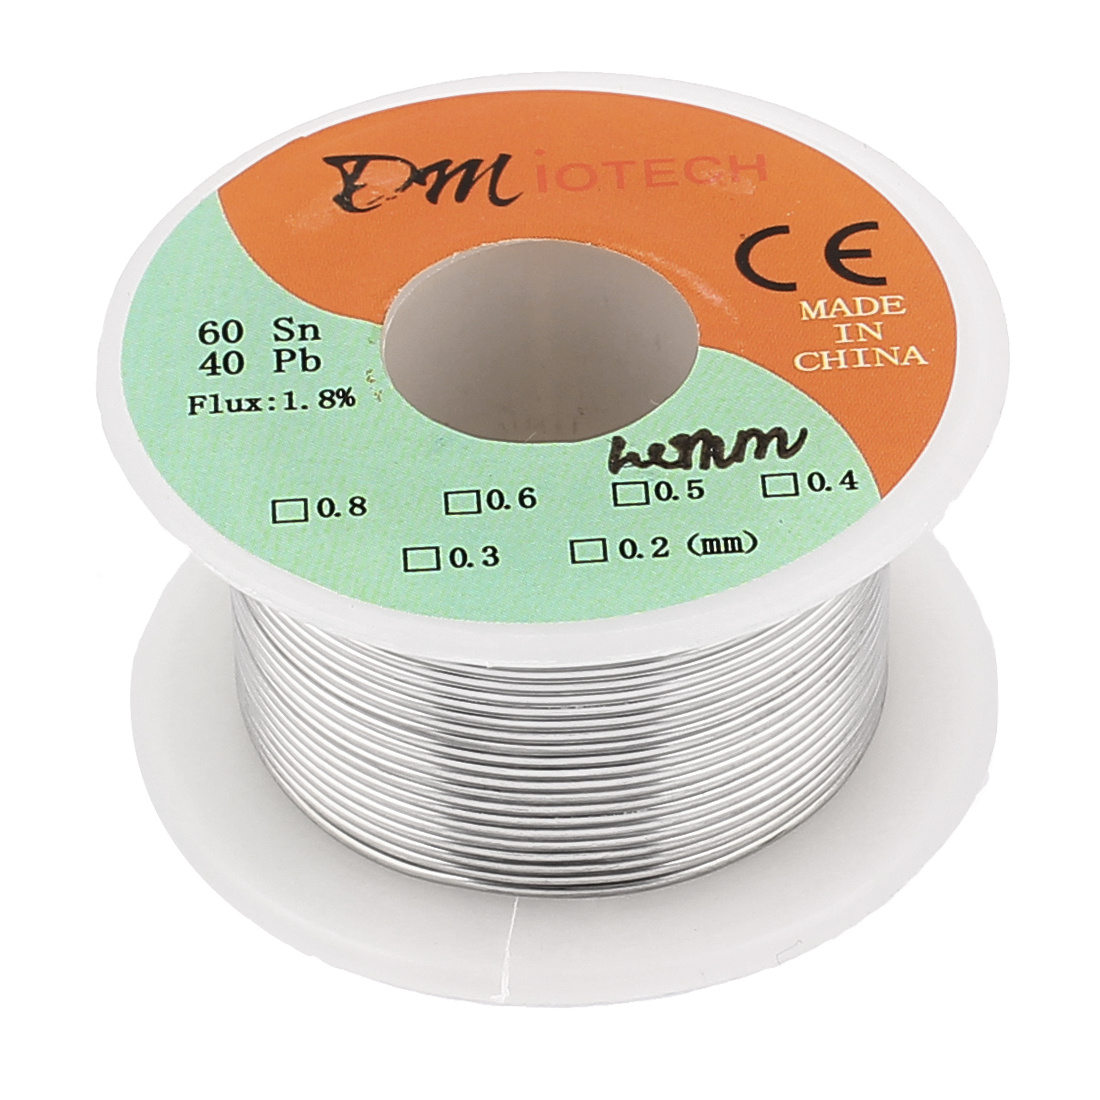 1mm Rosin Core Solder Tin Lead Solder Wire 60/40 for Electrical Soldering 35g